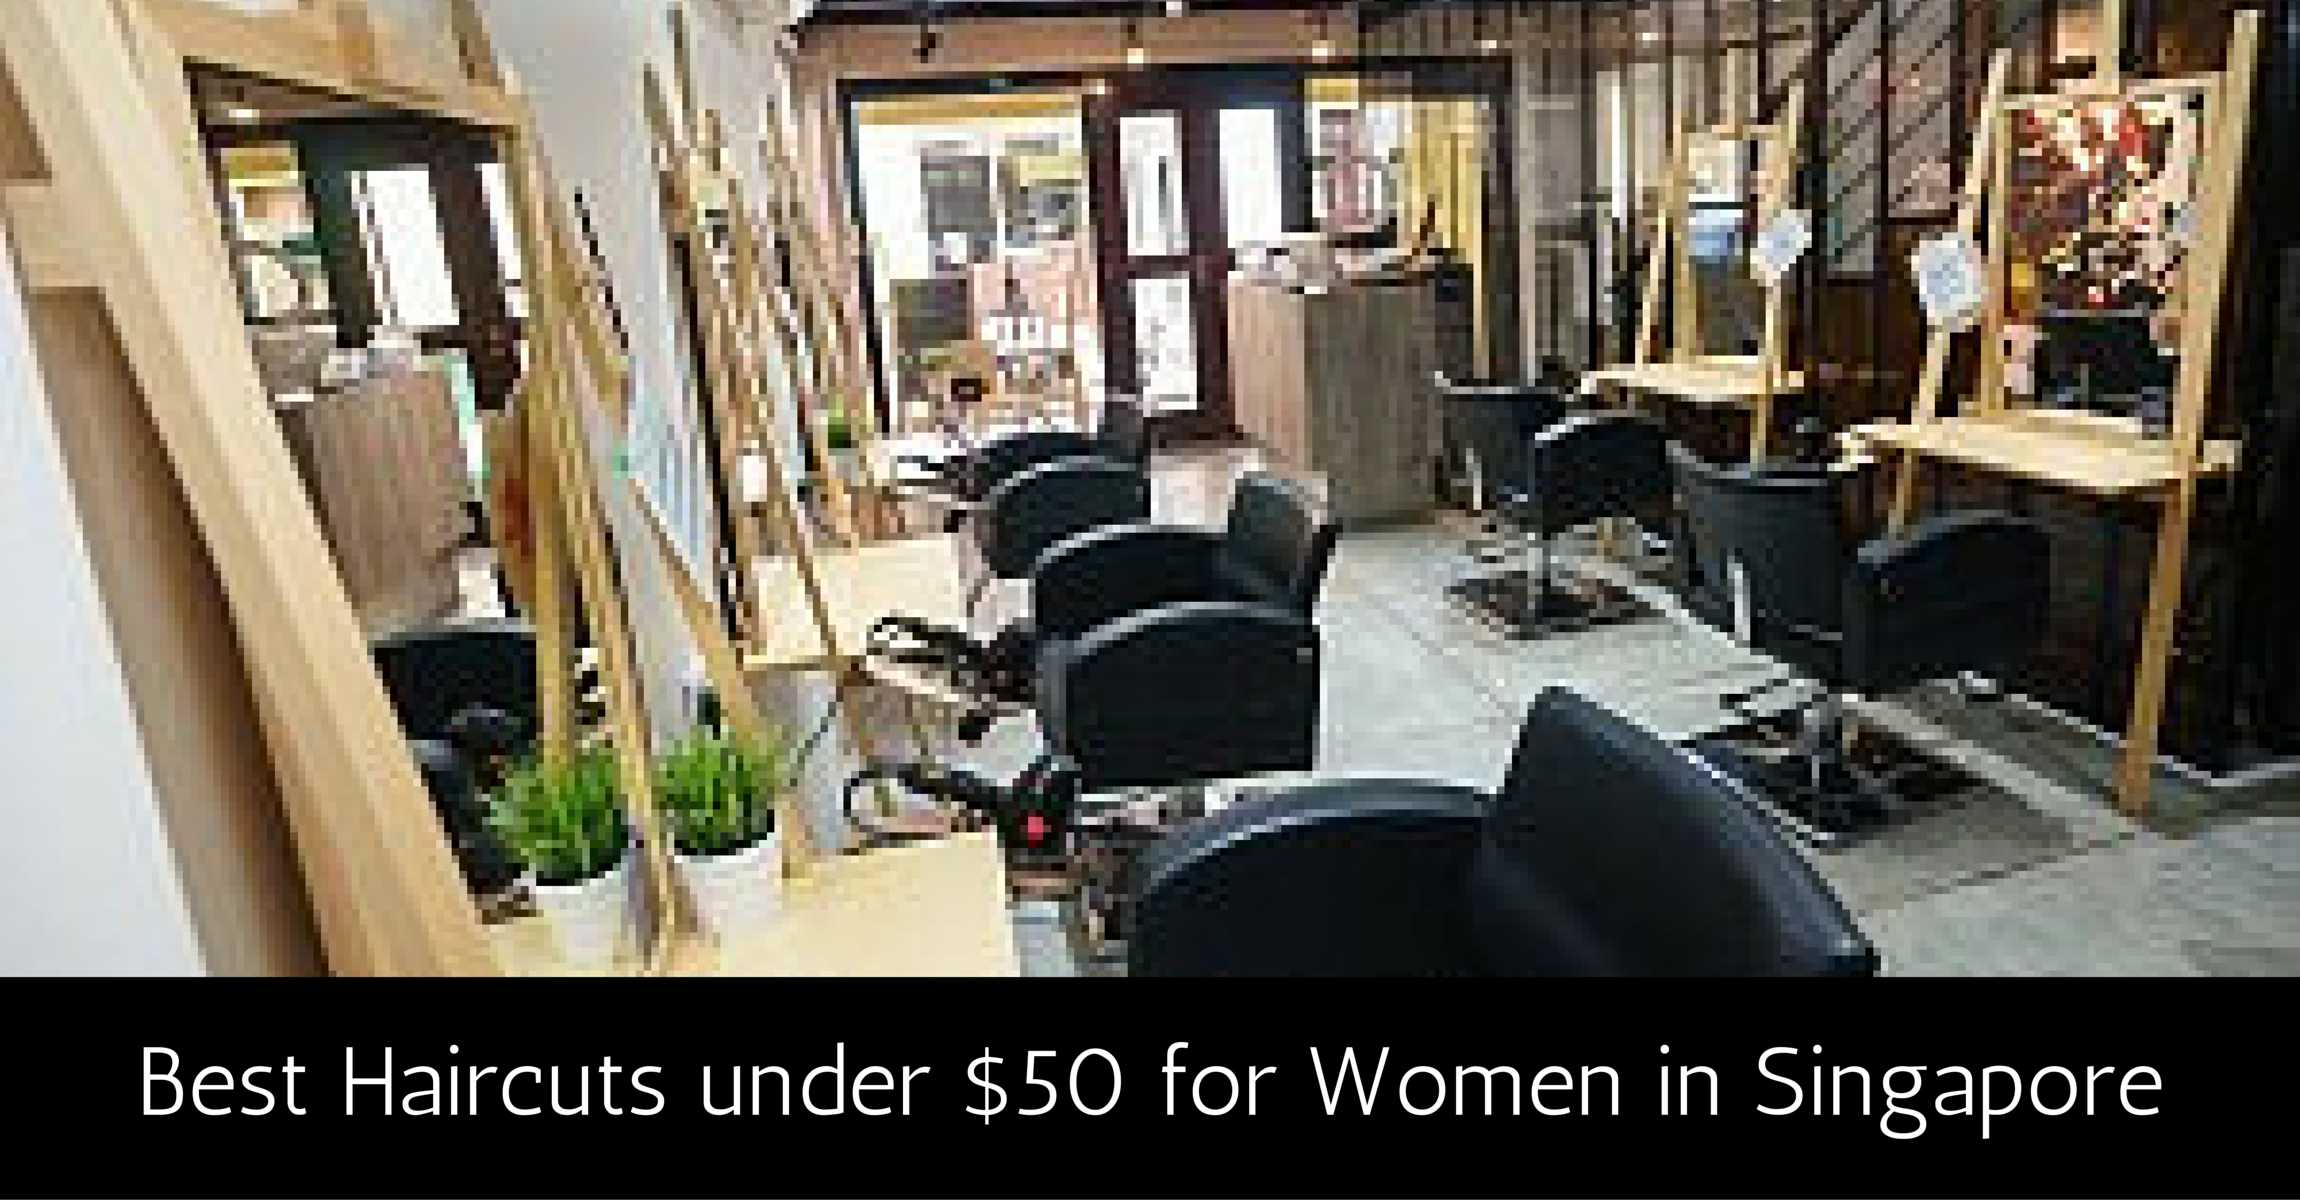 Best Haircuts in Singapore (Orchard, Bugis, City Hall, Chinatown) under $50